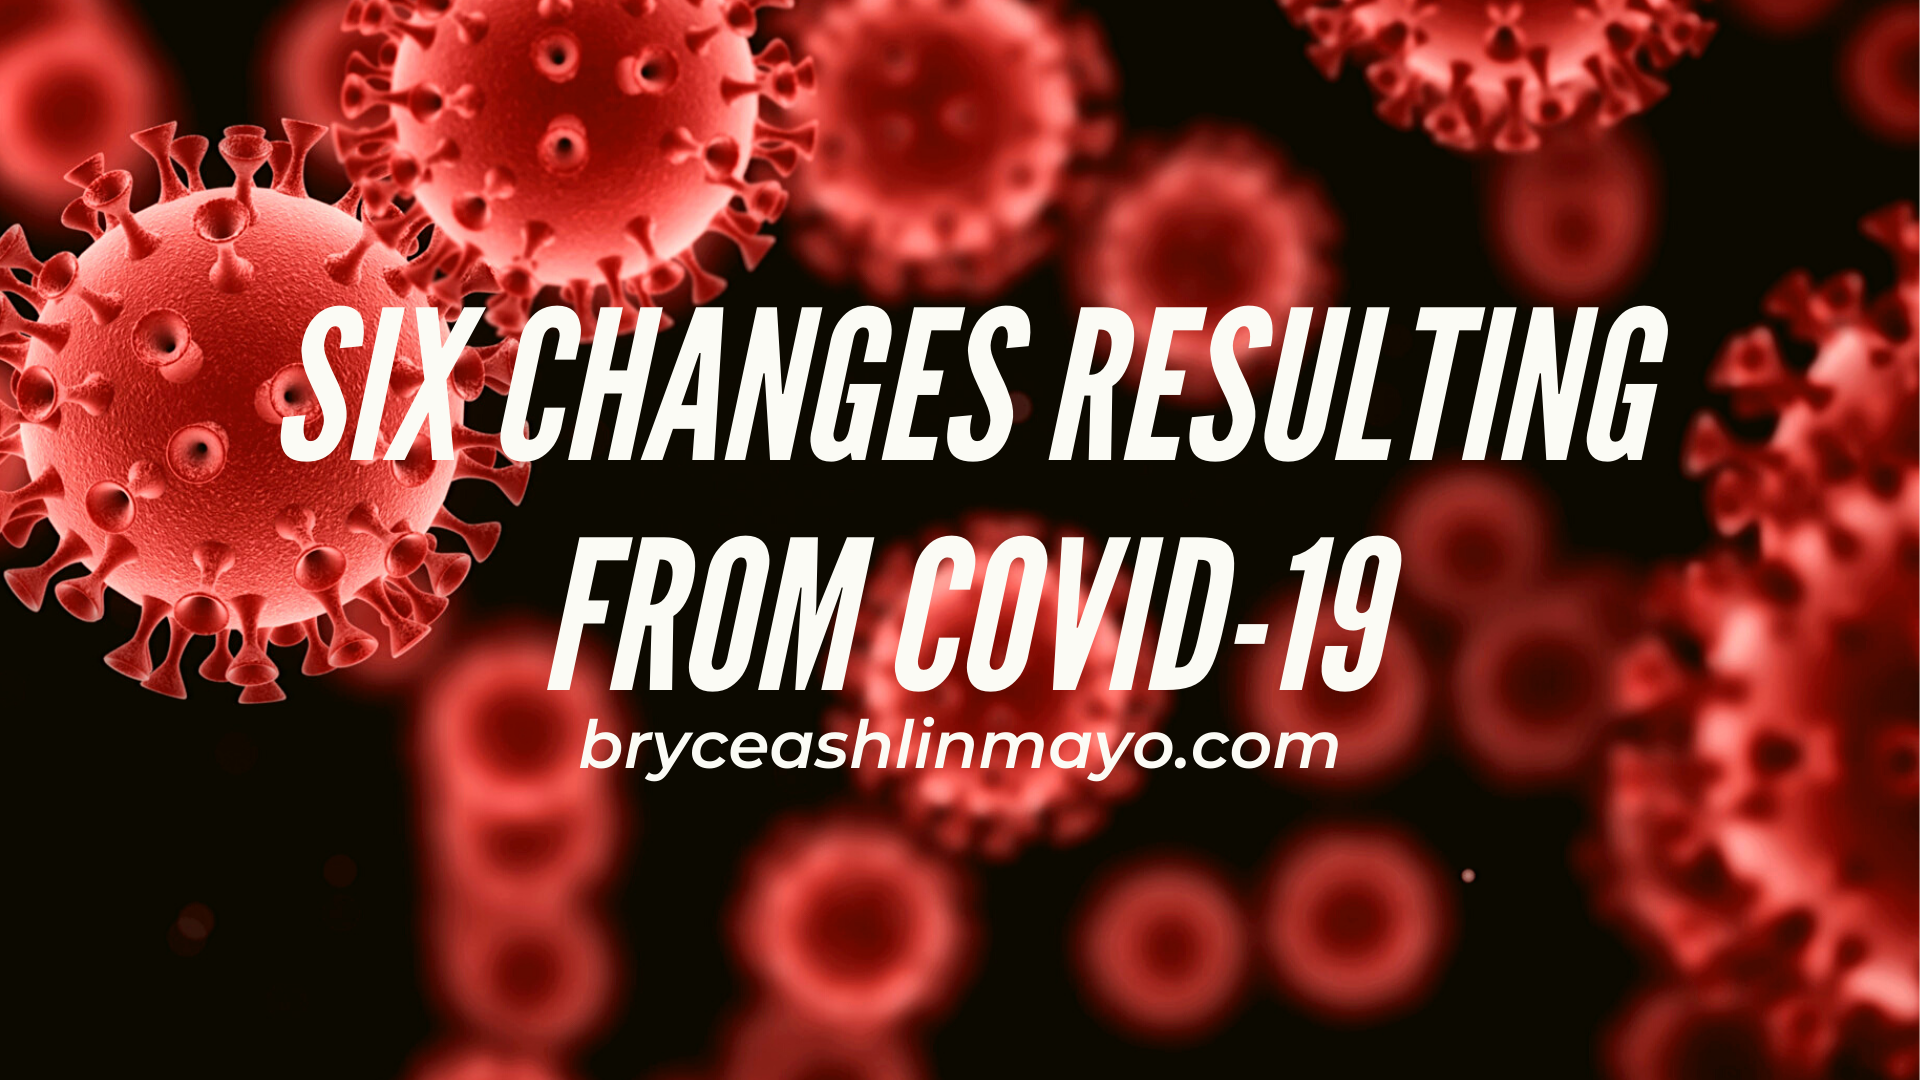 Six Changes Resulting from COVID-19